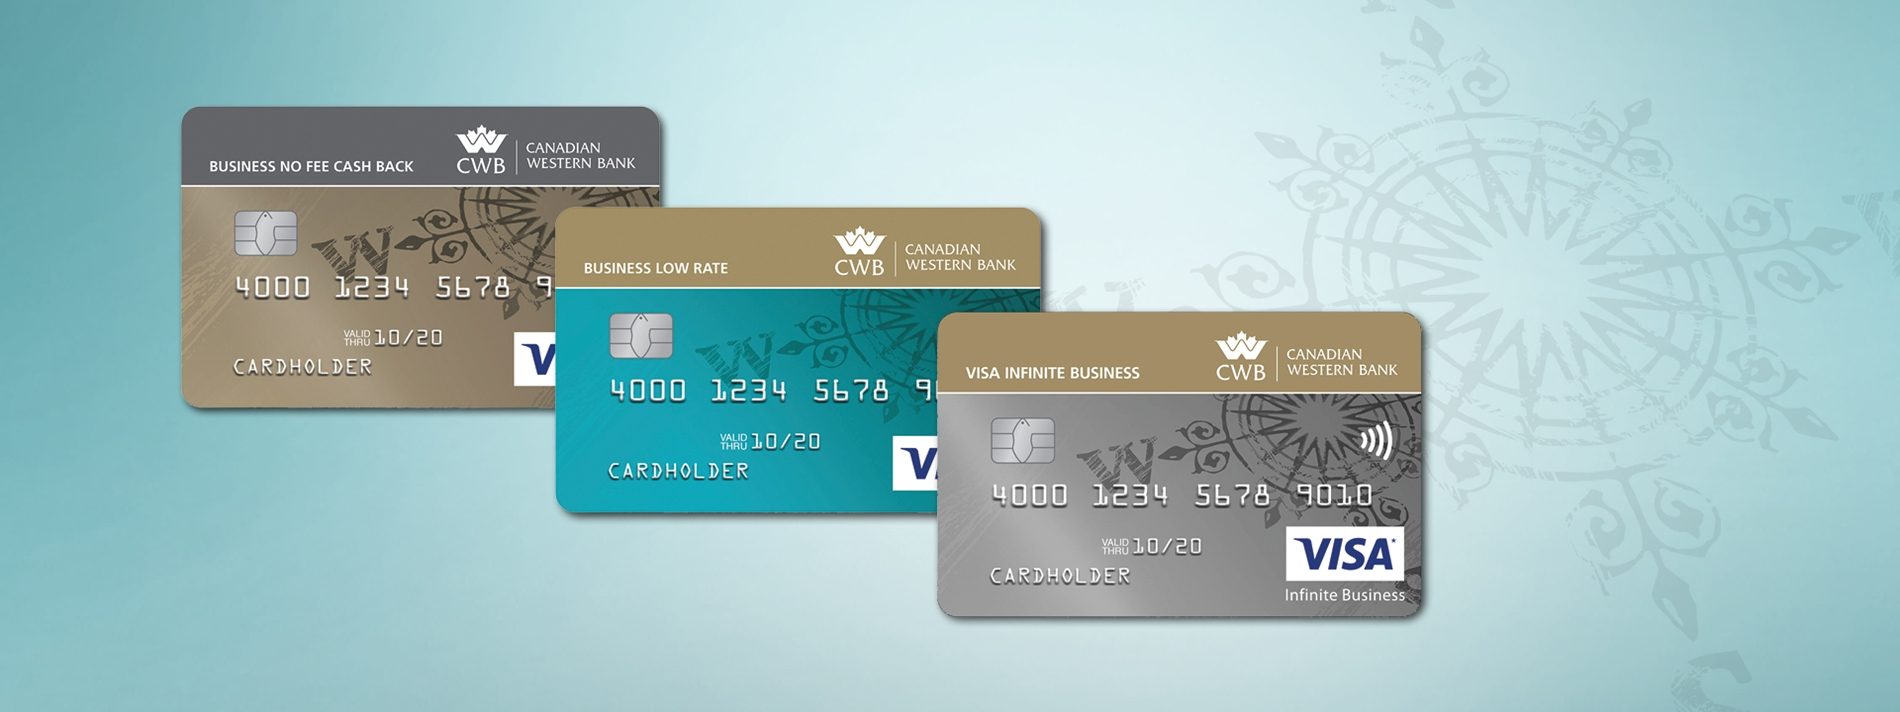 CWB Visa Business Cards